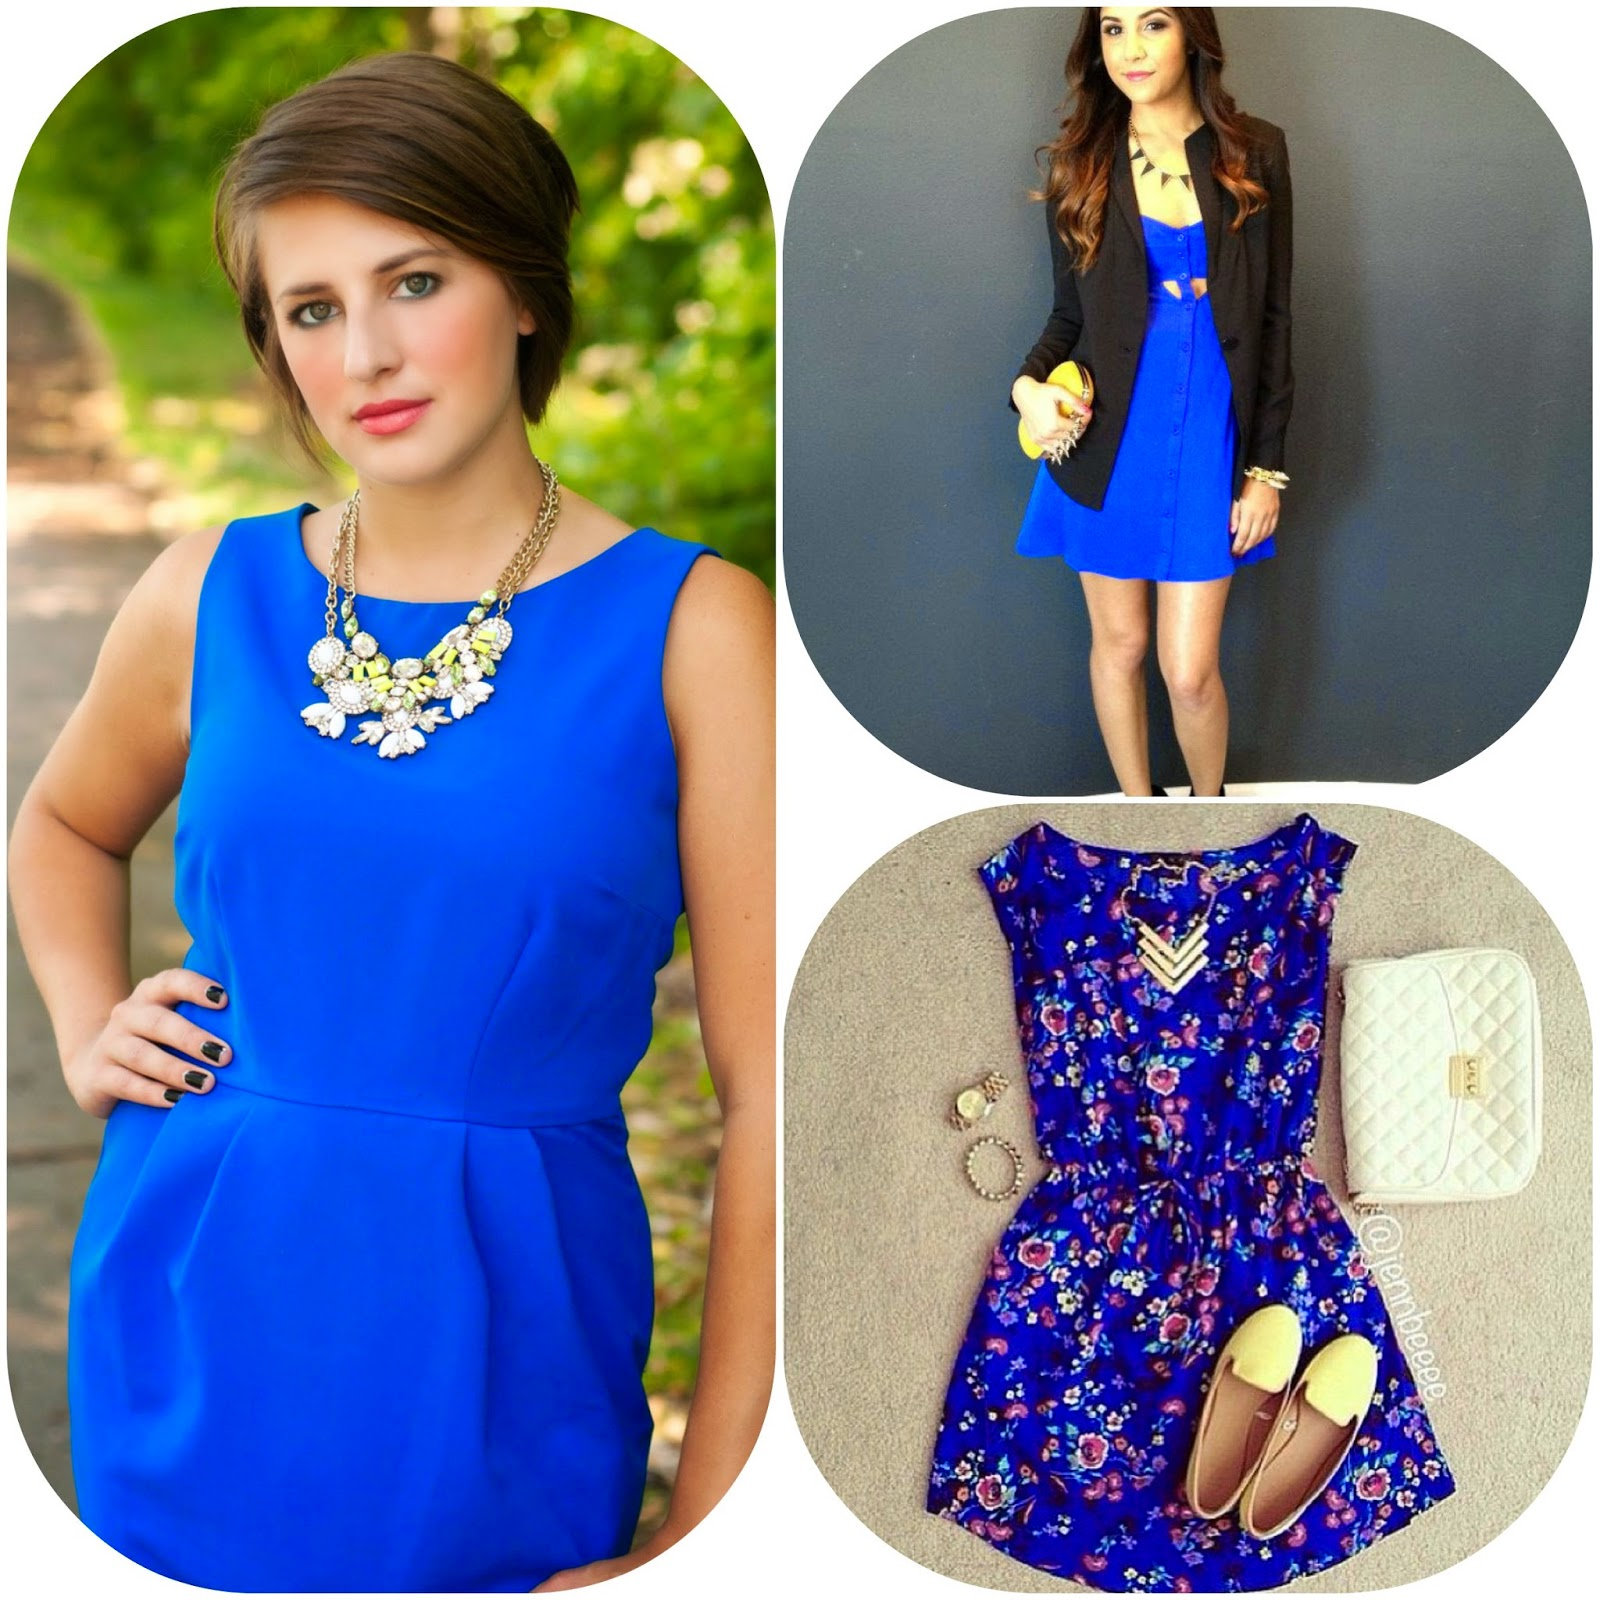 How to wear blue dress, how to style blue dresses, blue fashion style